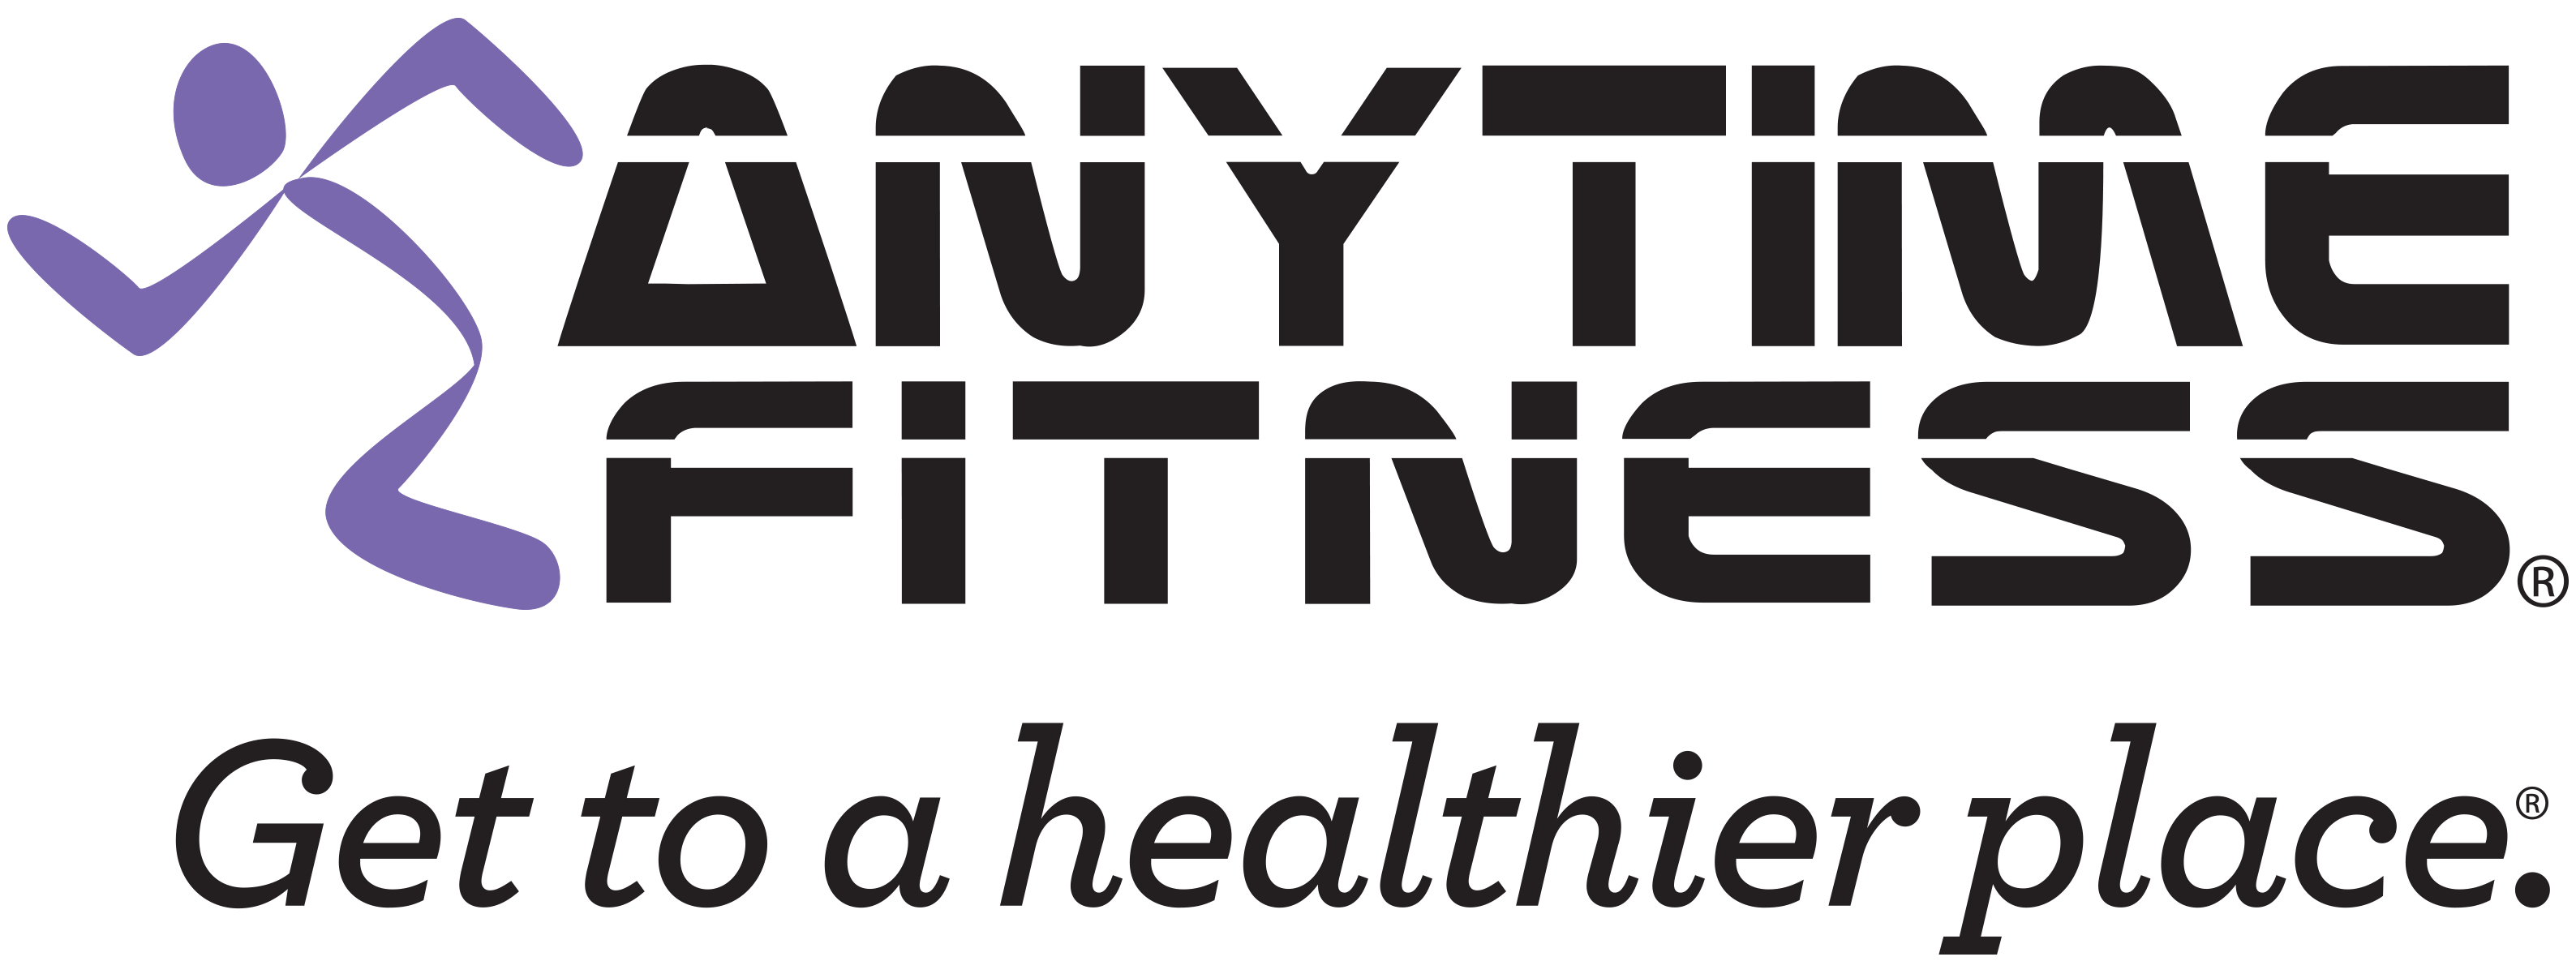 24 hour fitness png